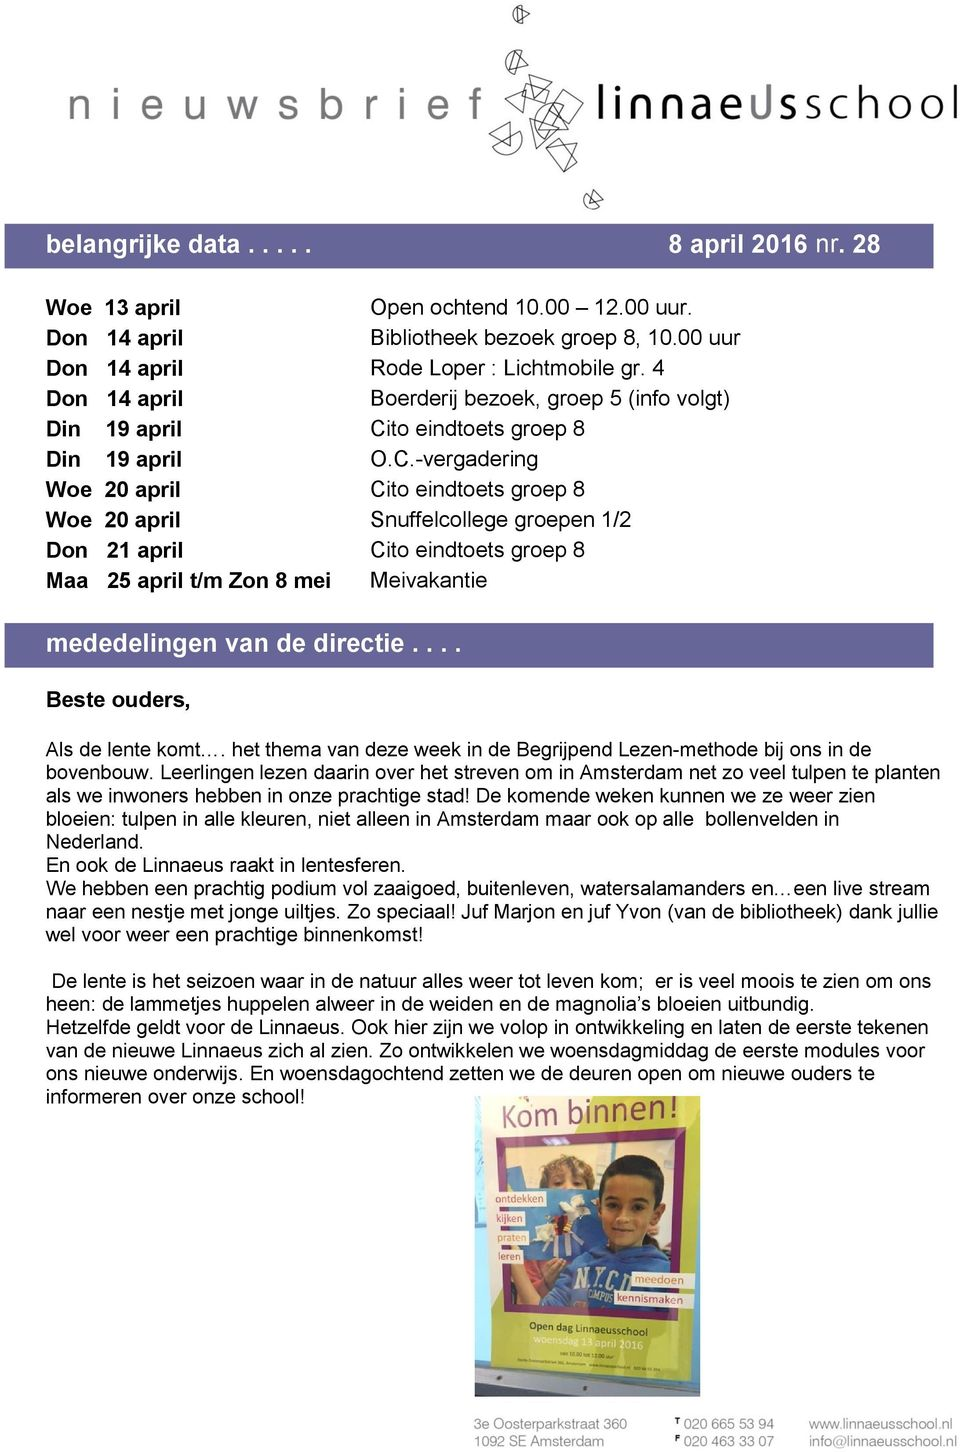 to eindtoets groep 8 Din 19 april O.C.